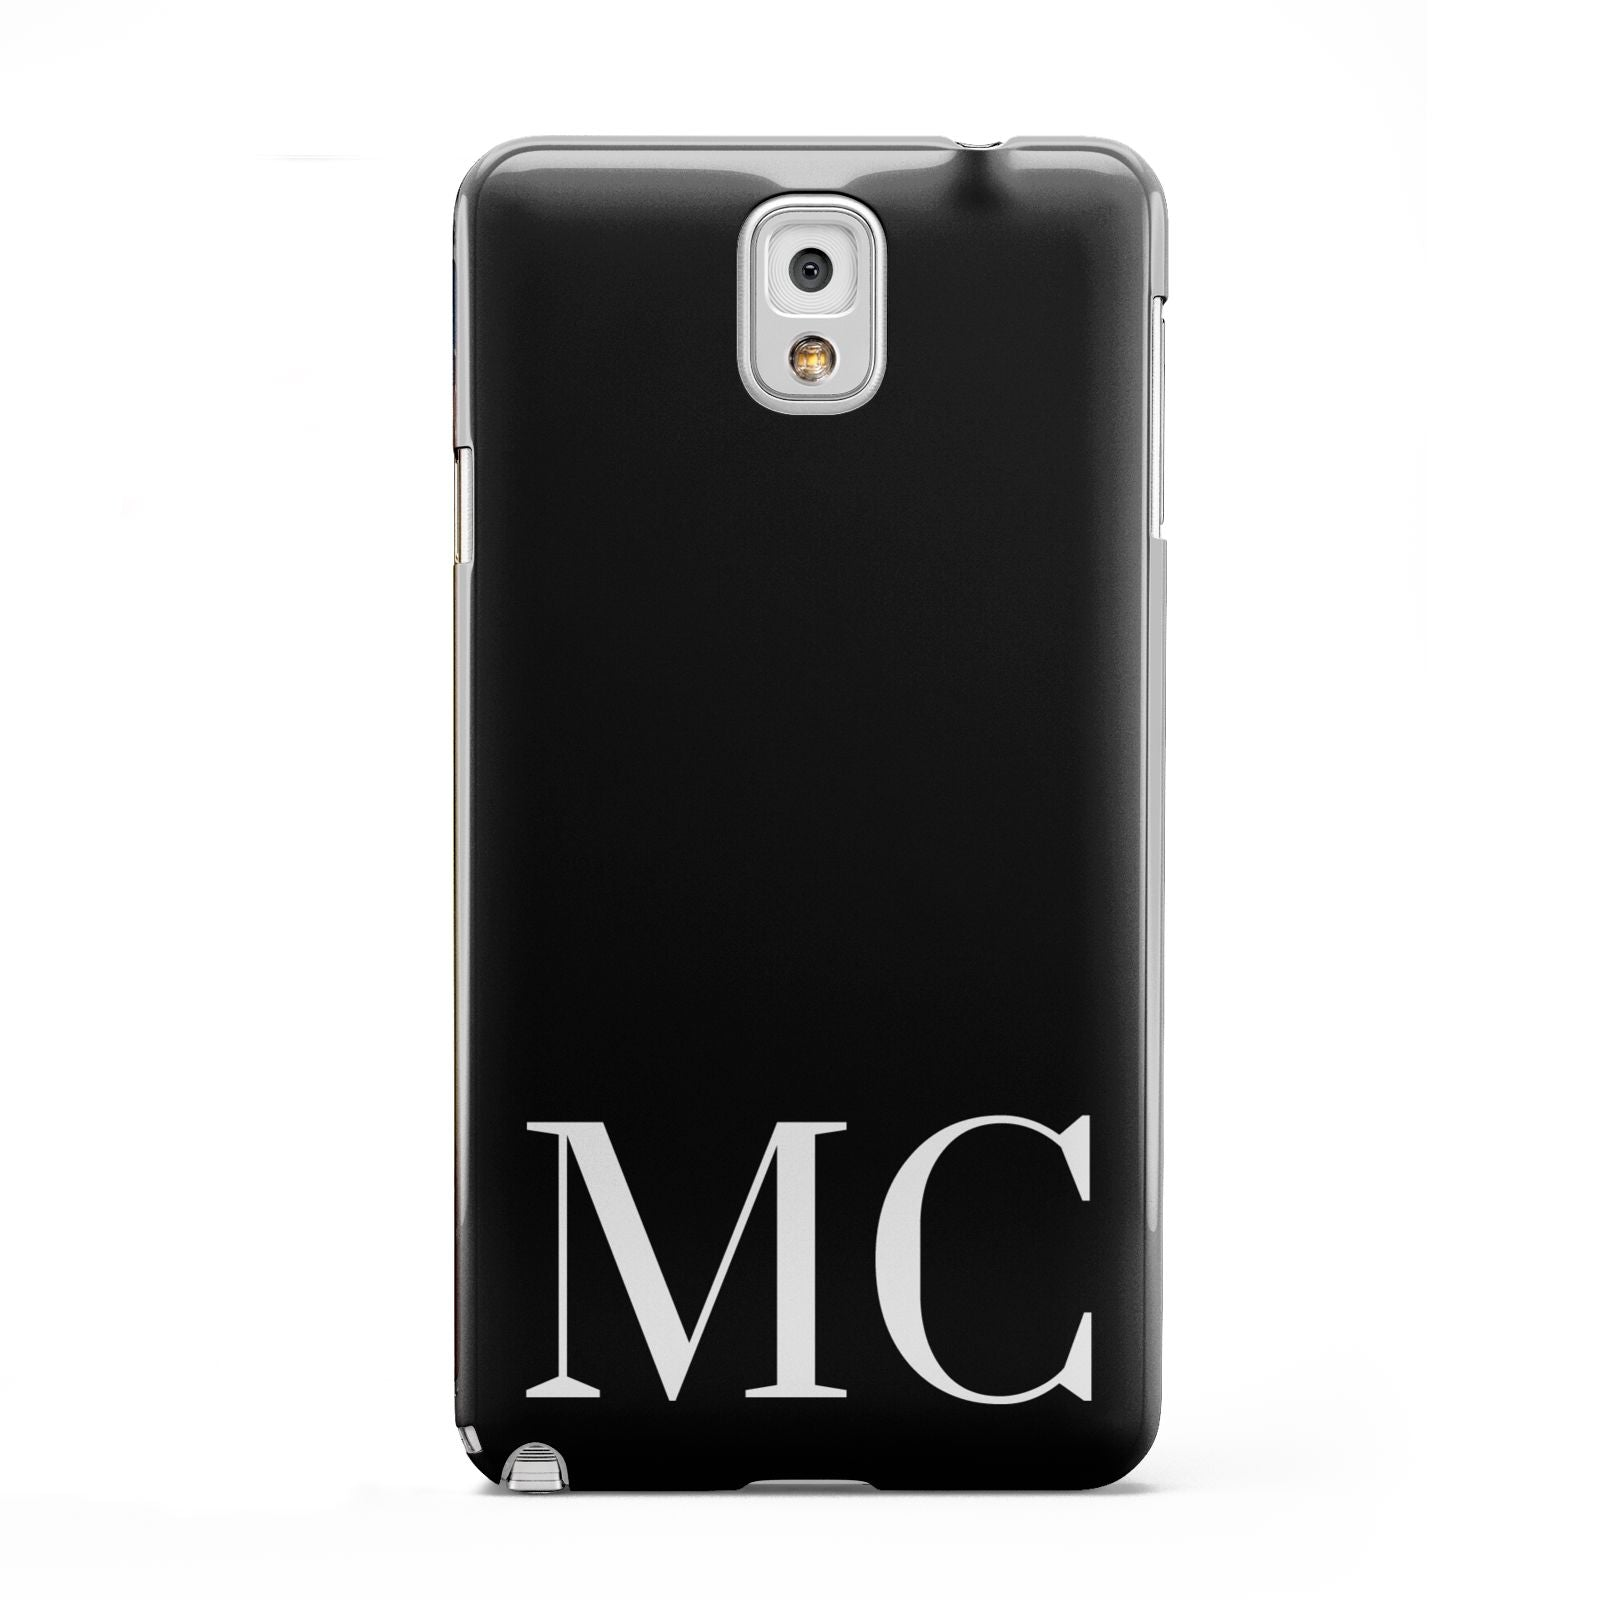 Initials Personalised 1 Samsung Galaxy Note 3 Case